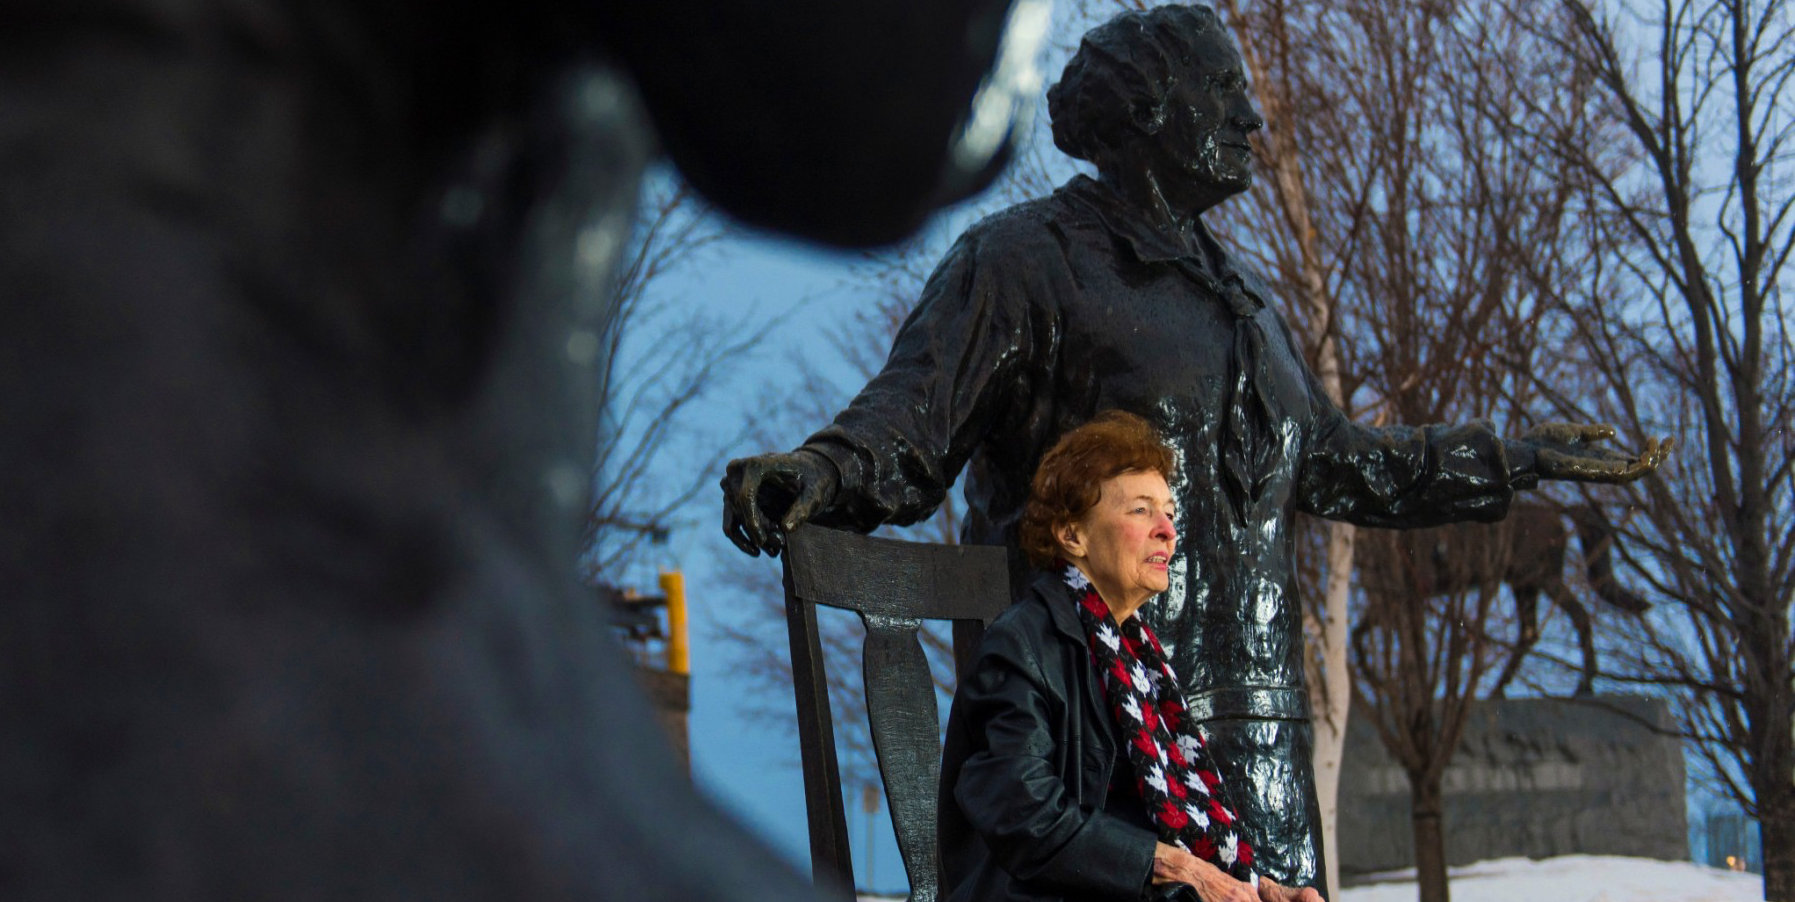 Dr. Marguerite Ritchie (University of Alberta alumna, retired Department of Justice lawyer, human rights activist and philanthropist) at the Supreme Court of Canada and with the Famous Five statues. In Ottawa, Ontario on March 24, 2015. ©2015 John Ulan